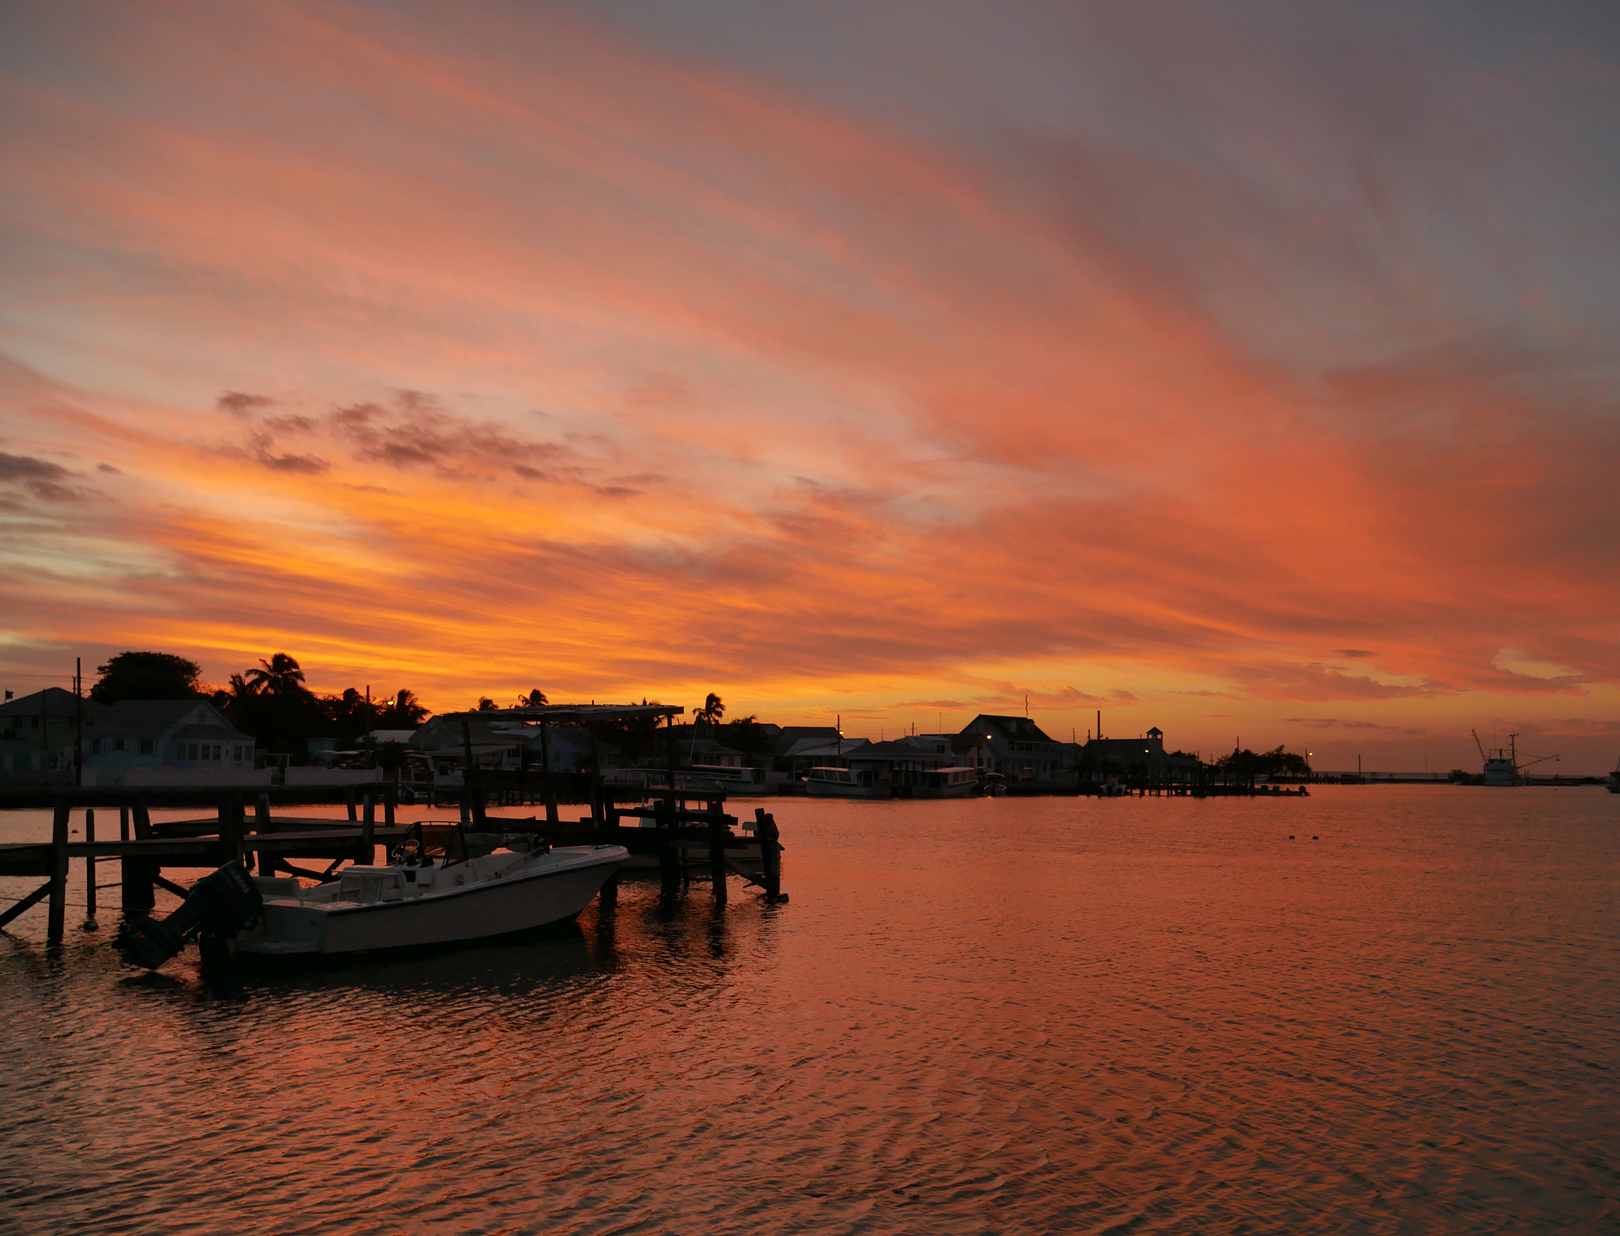 Settlement Creek at Sunset - Green Turtle Cay, Abaco, Bahamas.